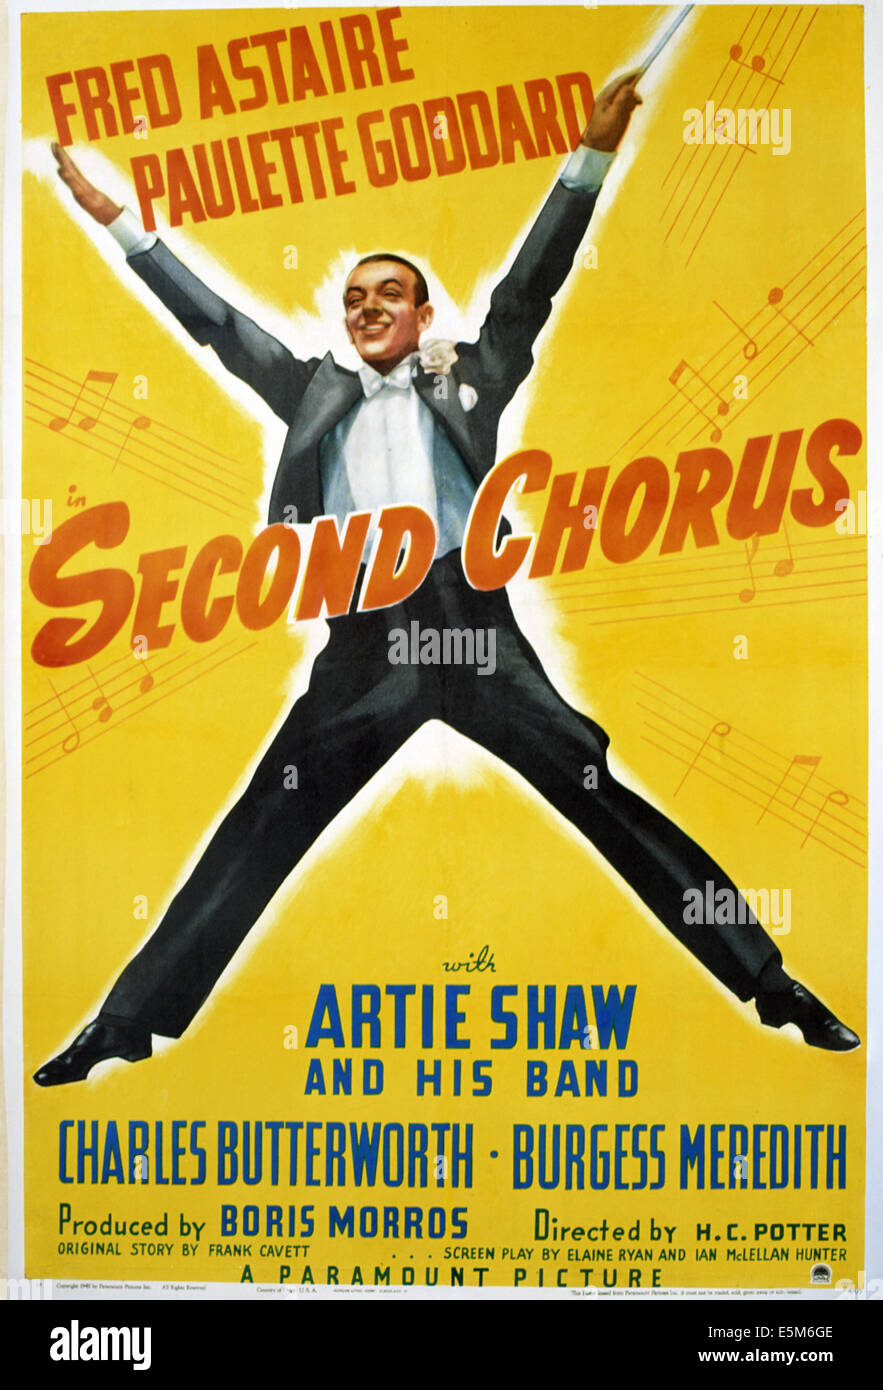 SECOND CHORUS, Fred Astaire, 1940 - Stock Image